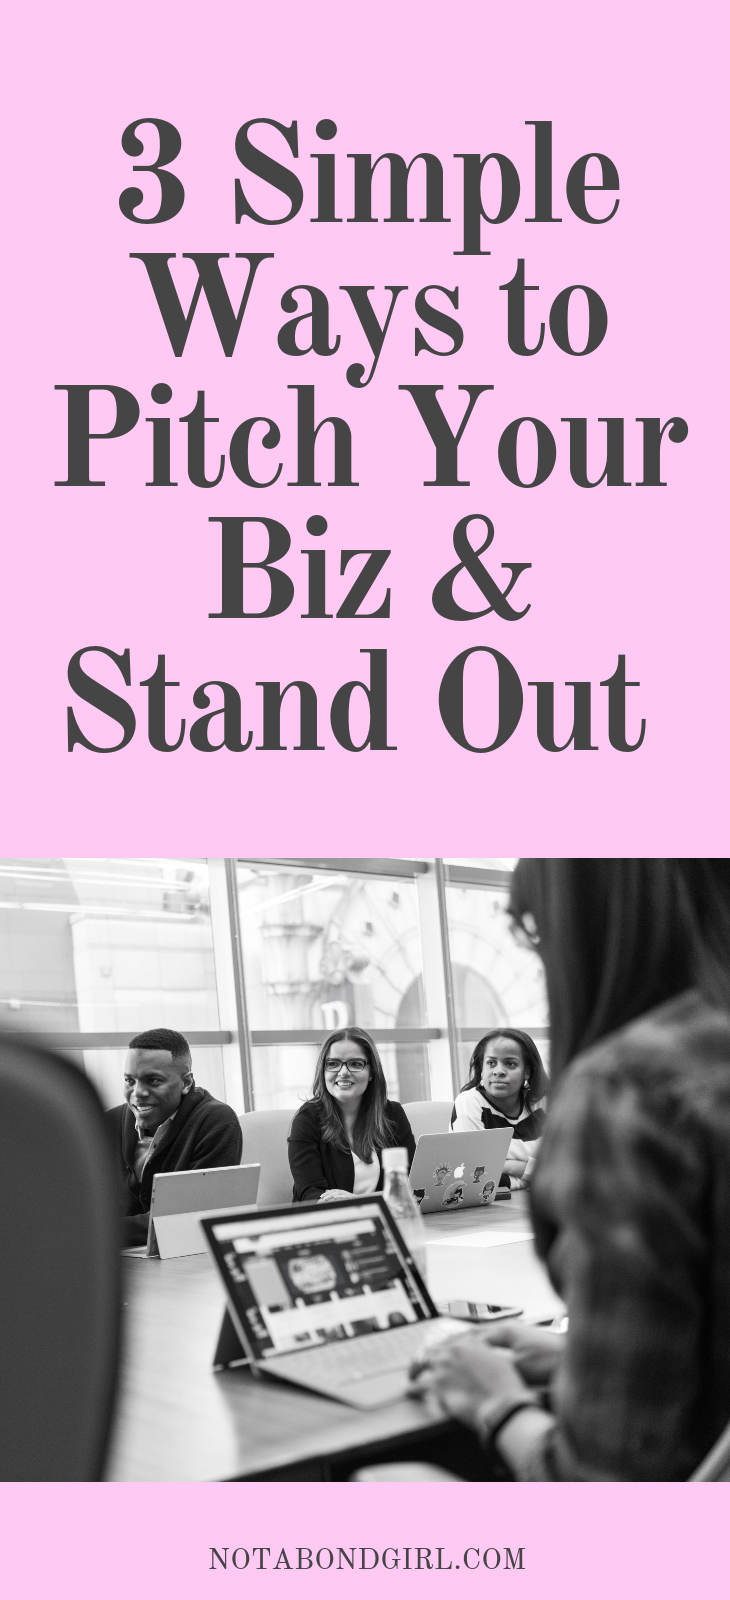 3 Simple Ways to Pitch Your Biz + Stand Out in a Saturated Market